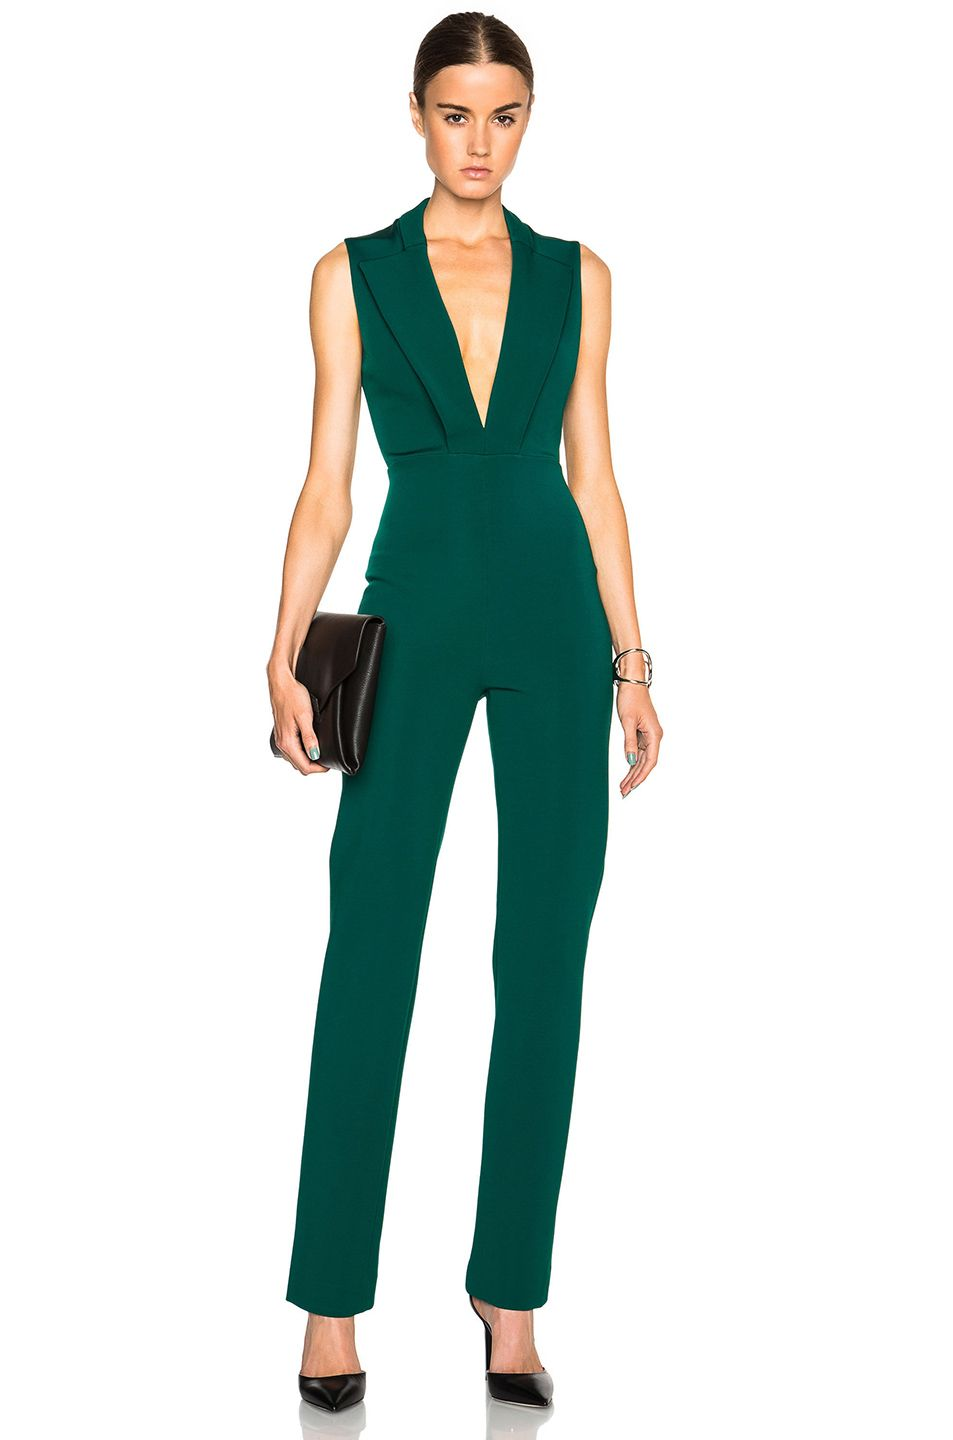 191e03c46e61 Image 1 of Cushnie et Ochs Power Stretch Viscose Jumpsuit in Emerald More